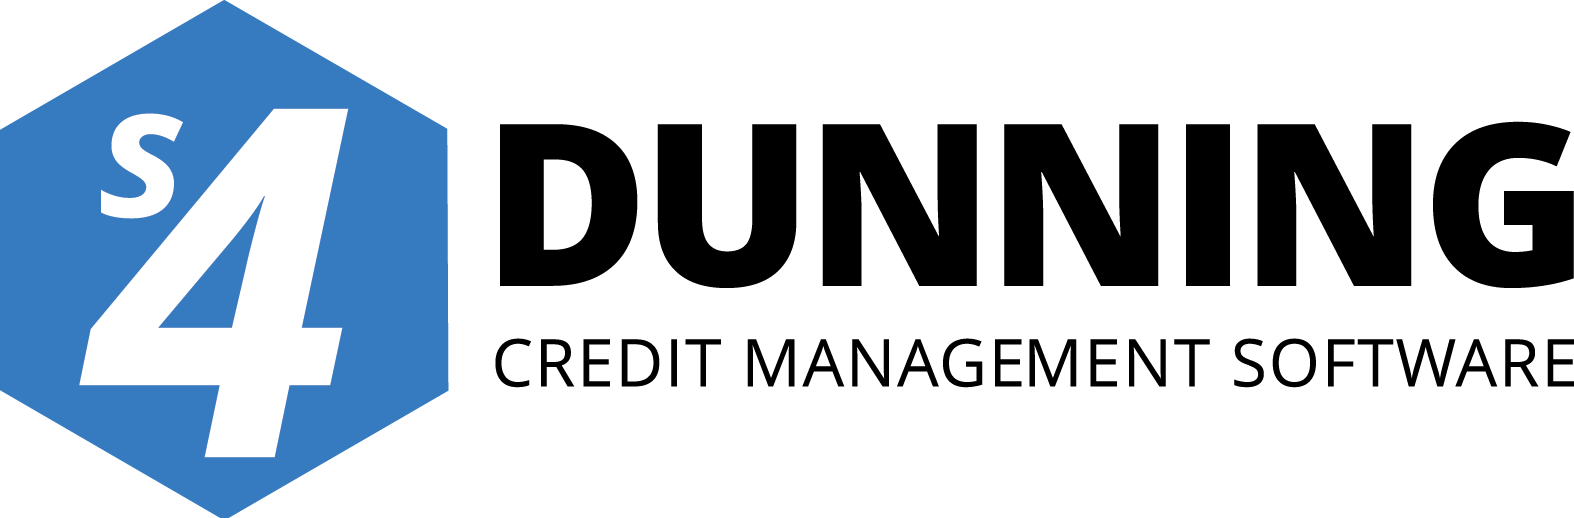 S4 Dunning : Credit Management Software